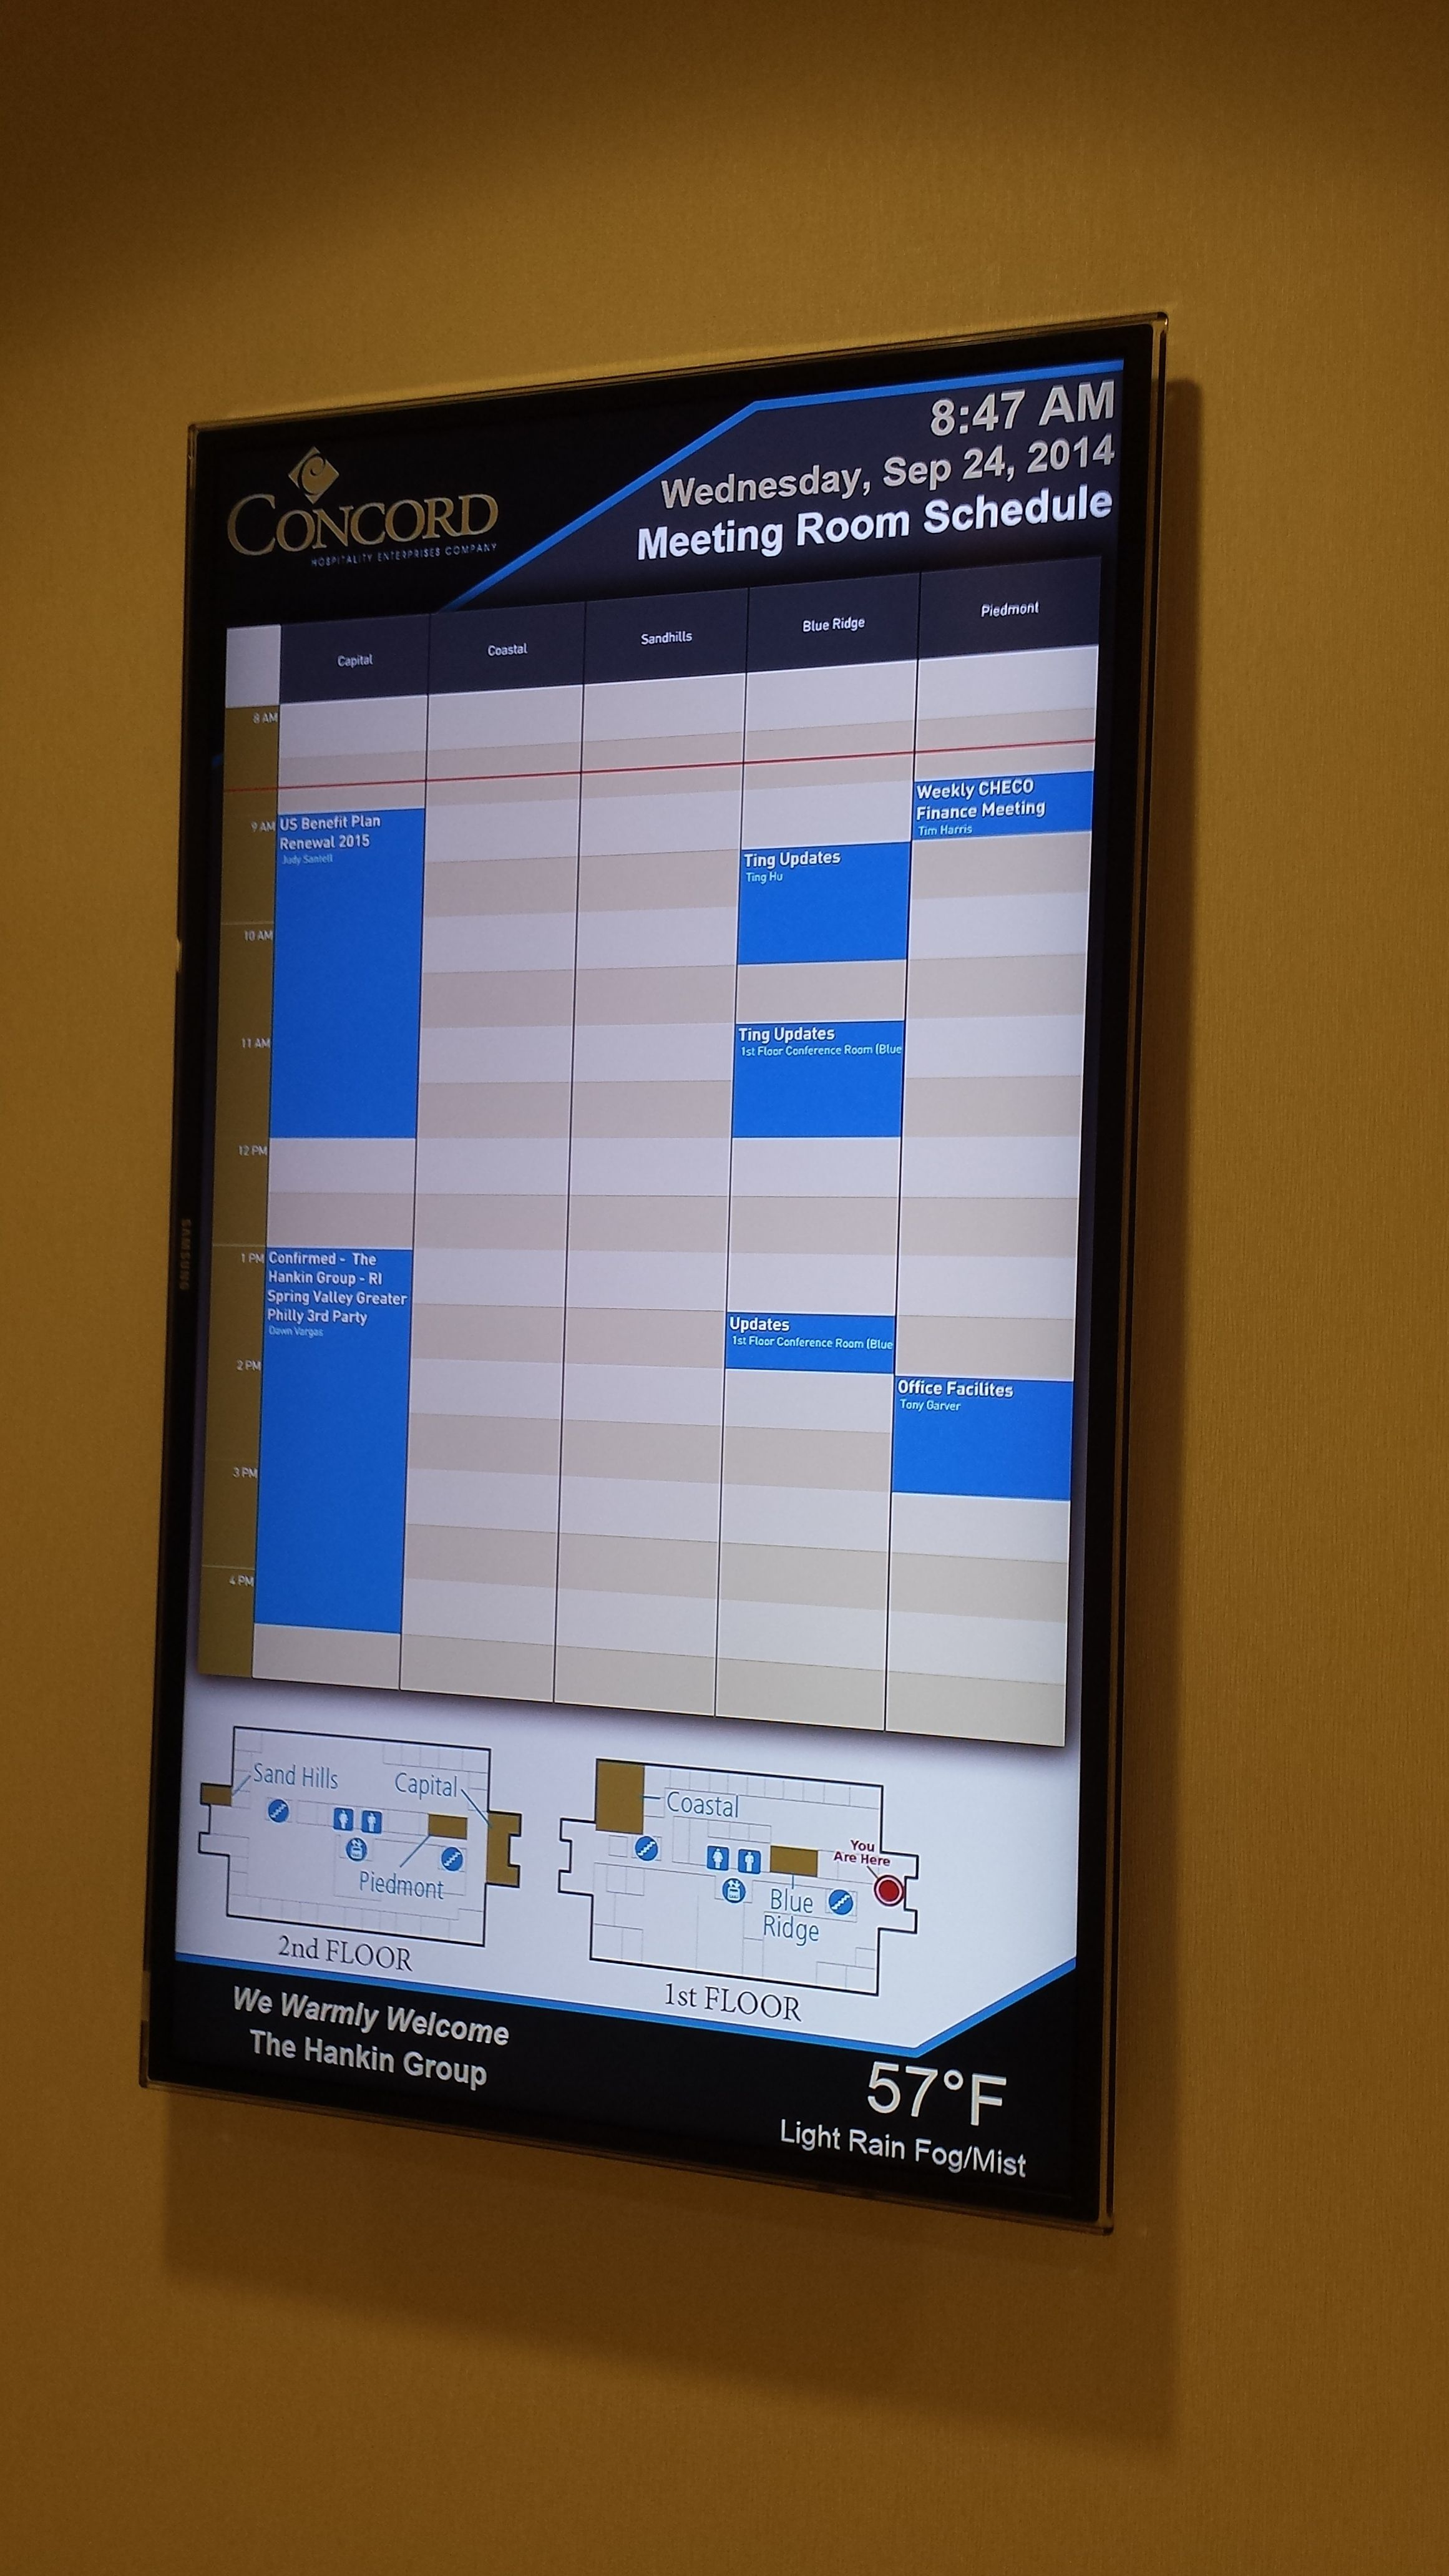 Concord Hq Digital Display Meeting Room Schedule Running Osi Ddf With Ms Exchange And Visitor